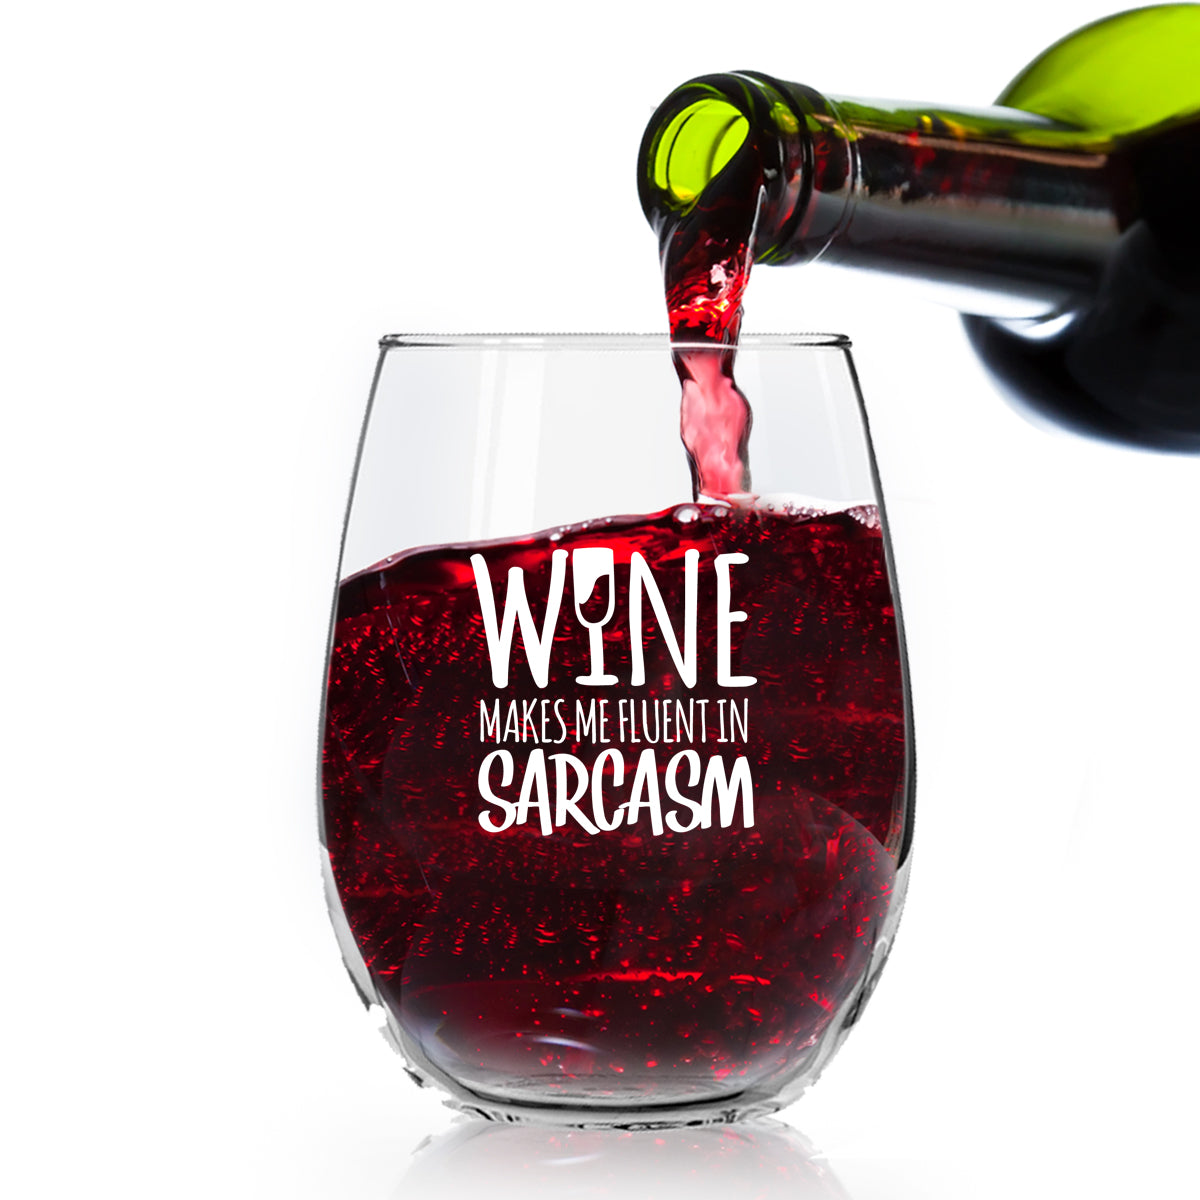 Wine Makes Me Fluent in Sarcasm Funny Stemless Wine Glass - 15 oz - Made in USA